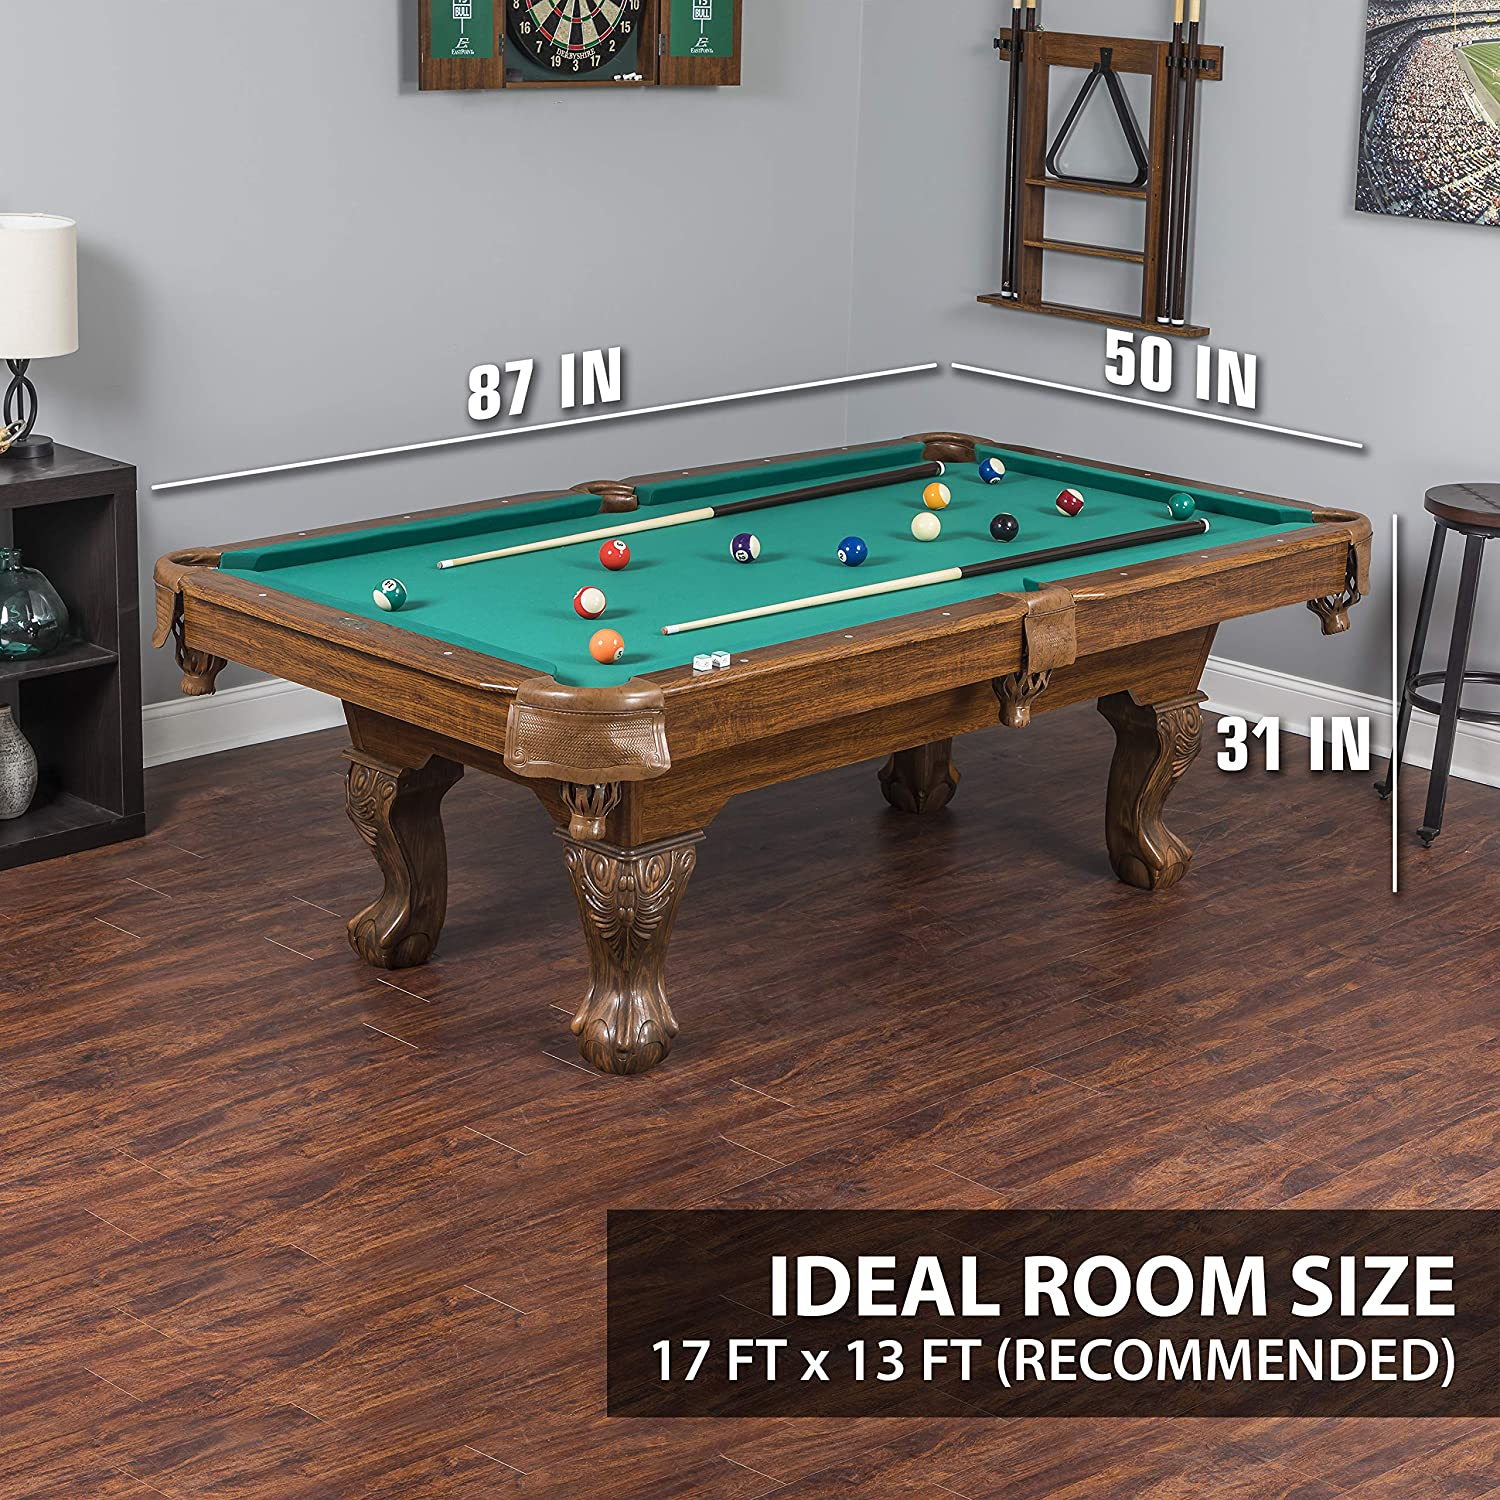 Marvelous Eastpoint Sports Masterton Billiard Pool Table 87 Inch Features Traditional Claw Legs And Parlor Style Drop Pockets Includes 2 Cues Billiards Download Free Architecture Designs Scobabritishbridgeorg